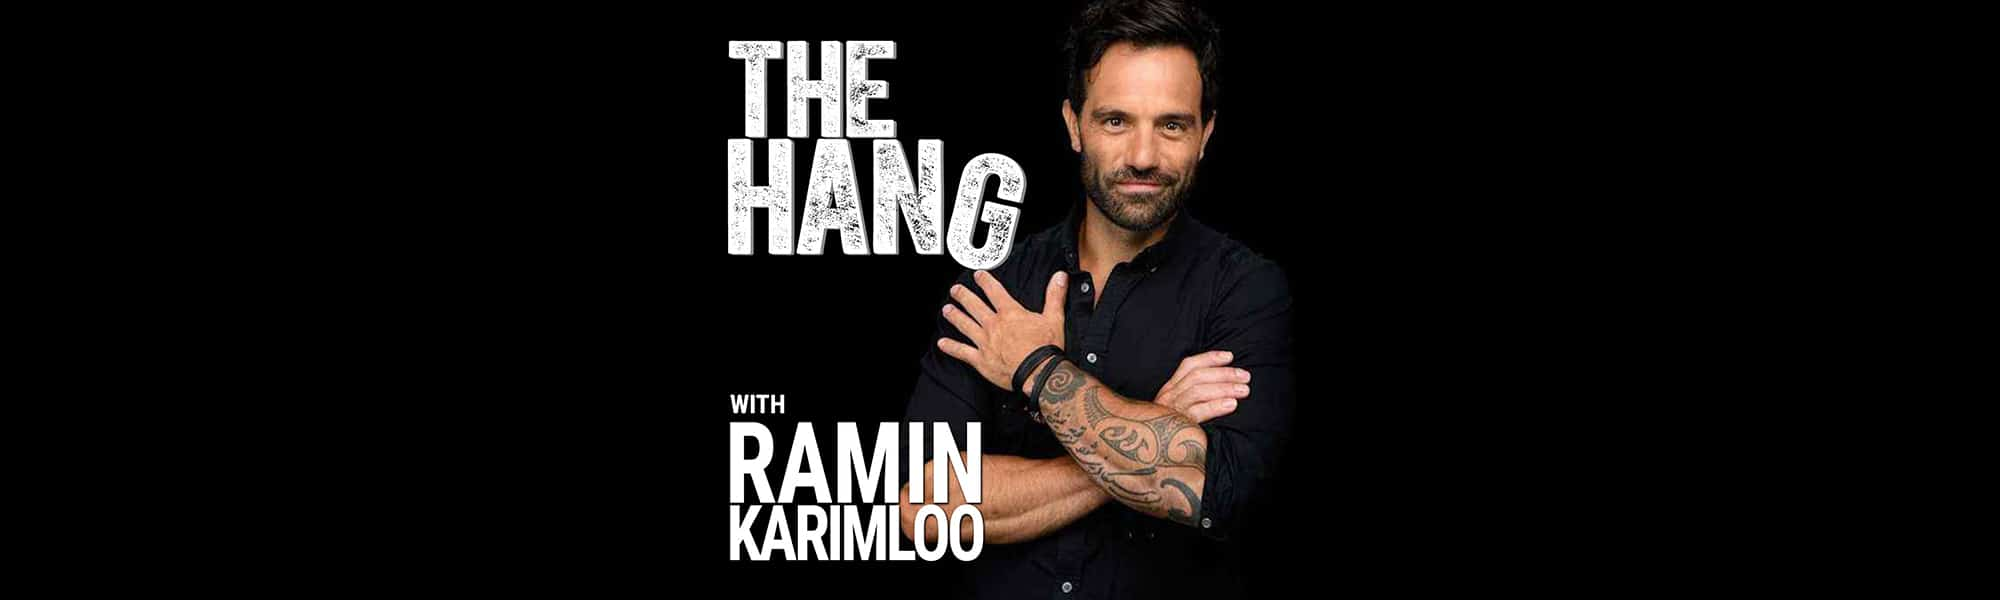 The Hang with Ramin Karimloo banner